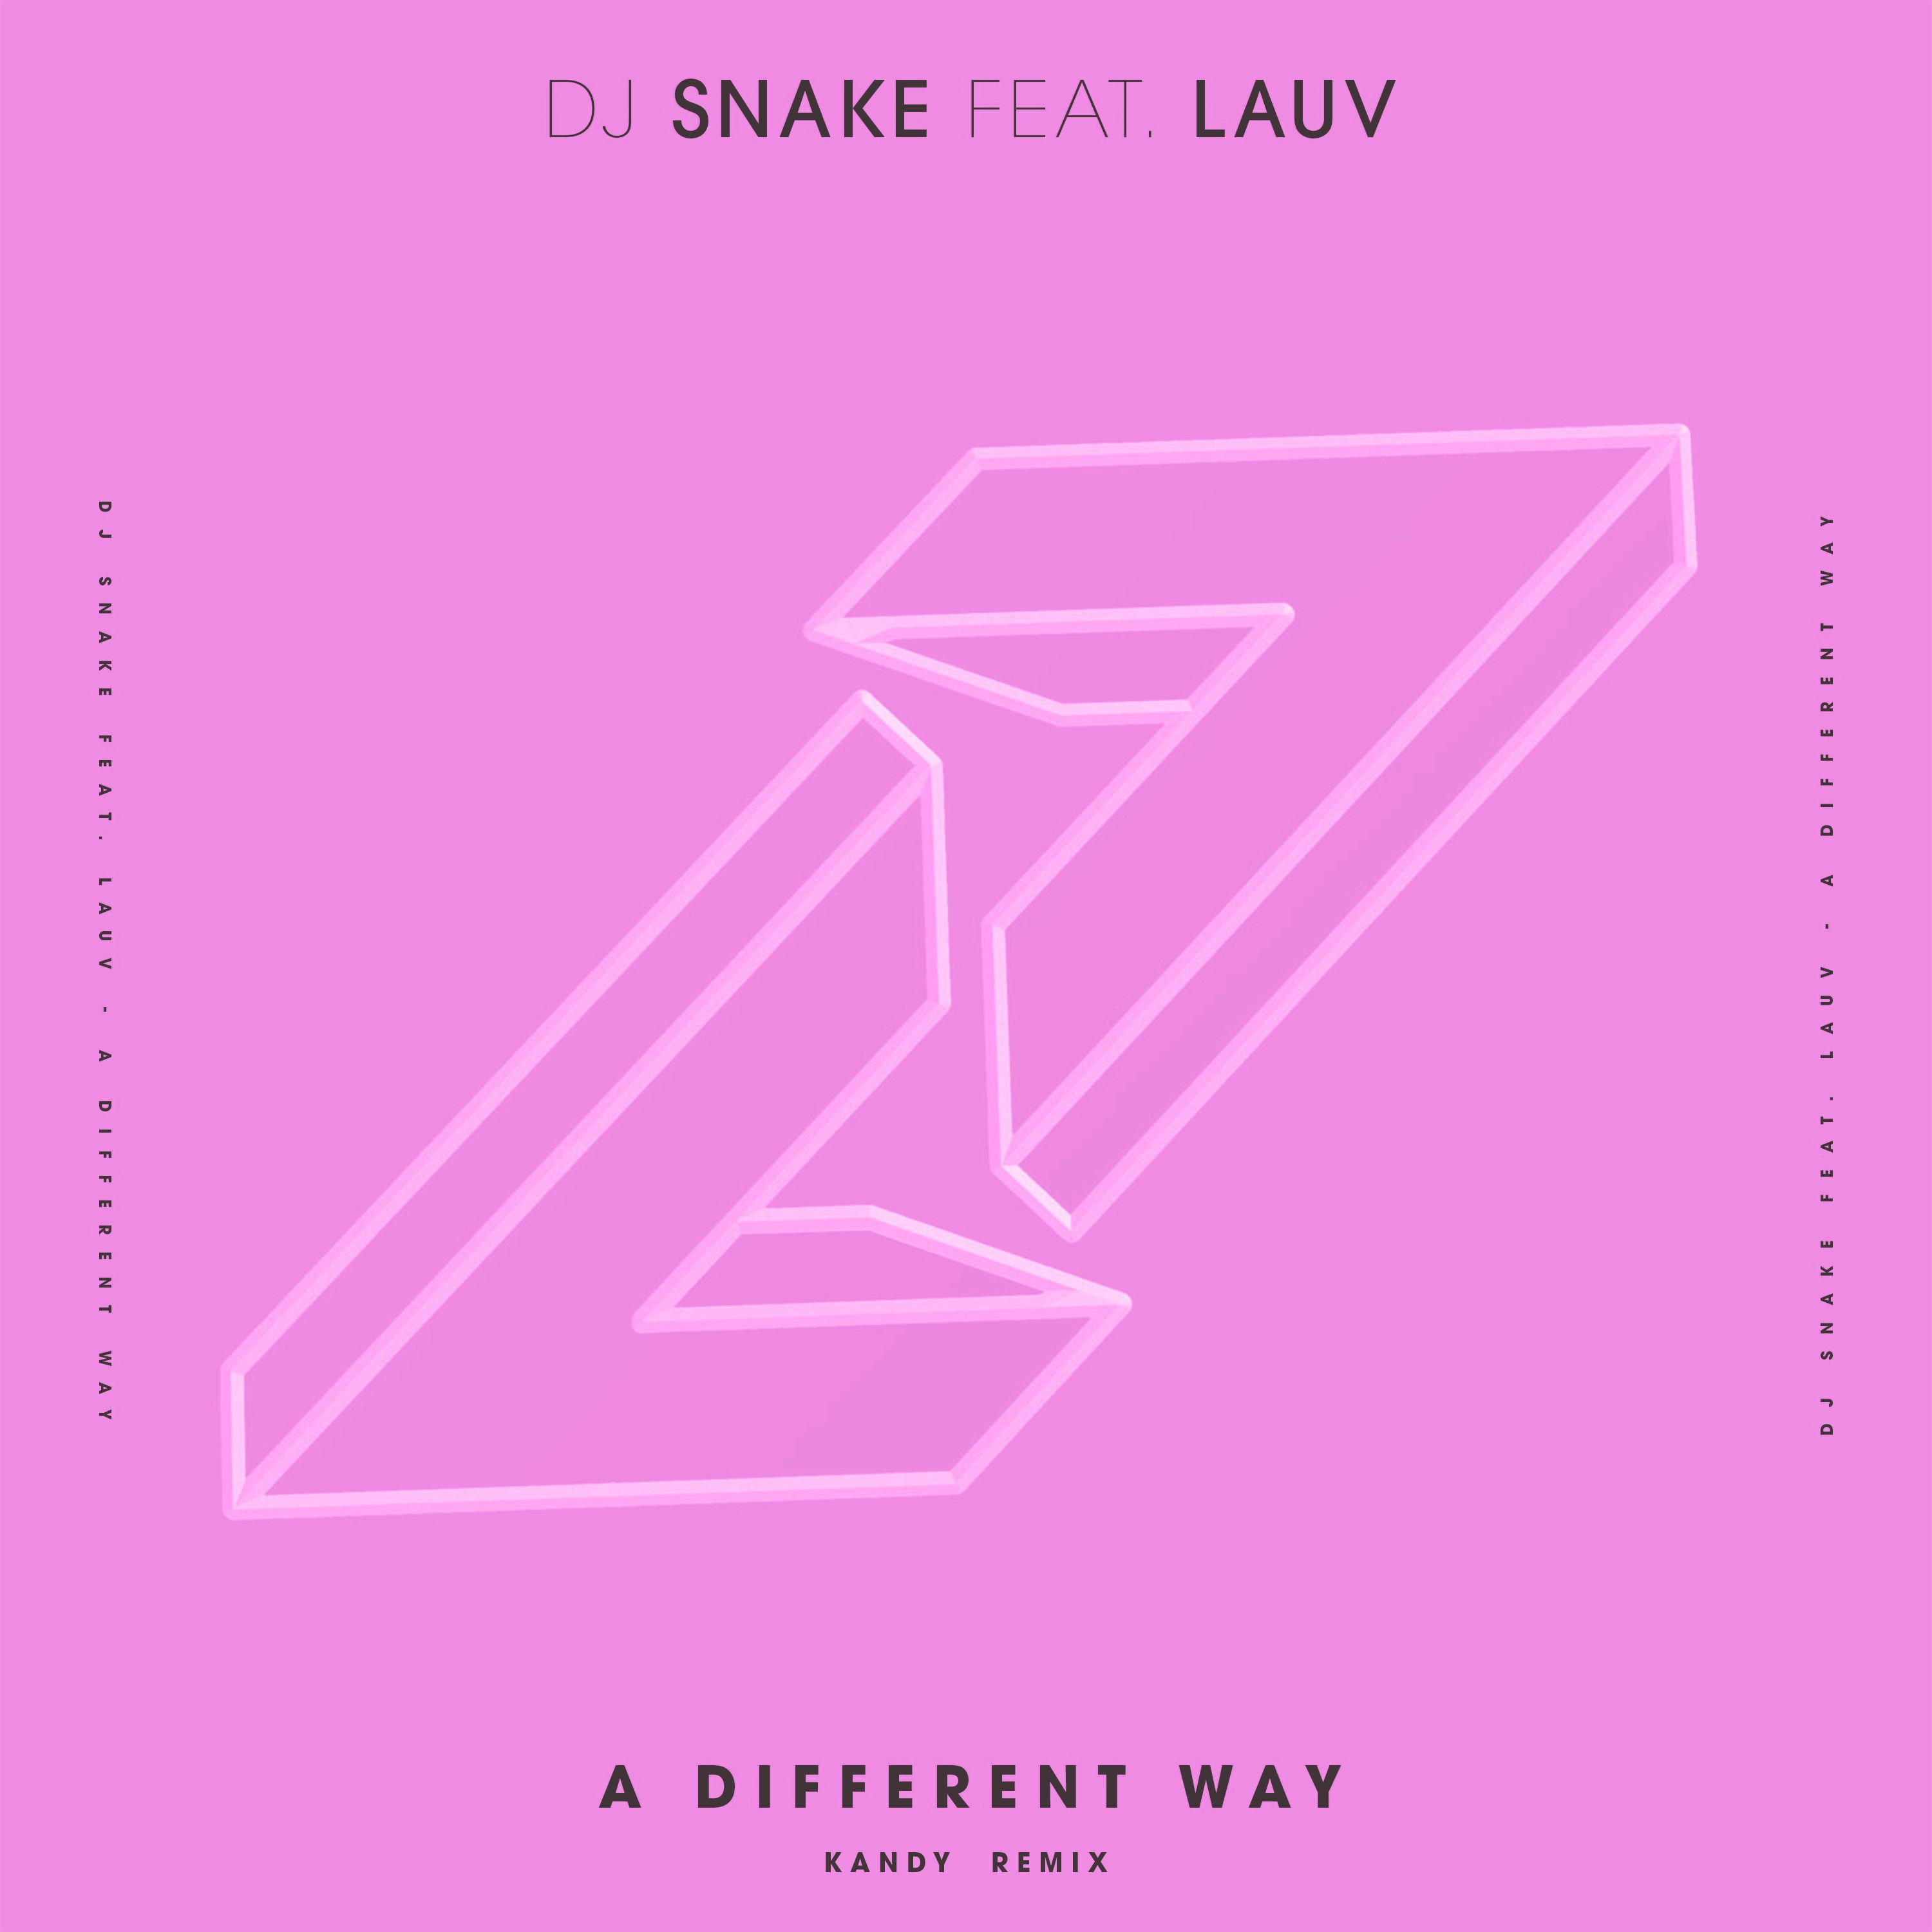 dj snake a different way video free download